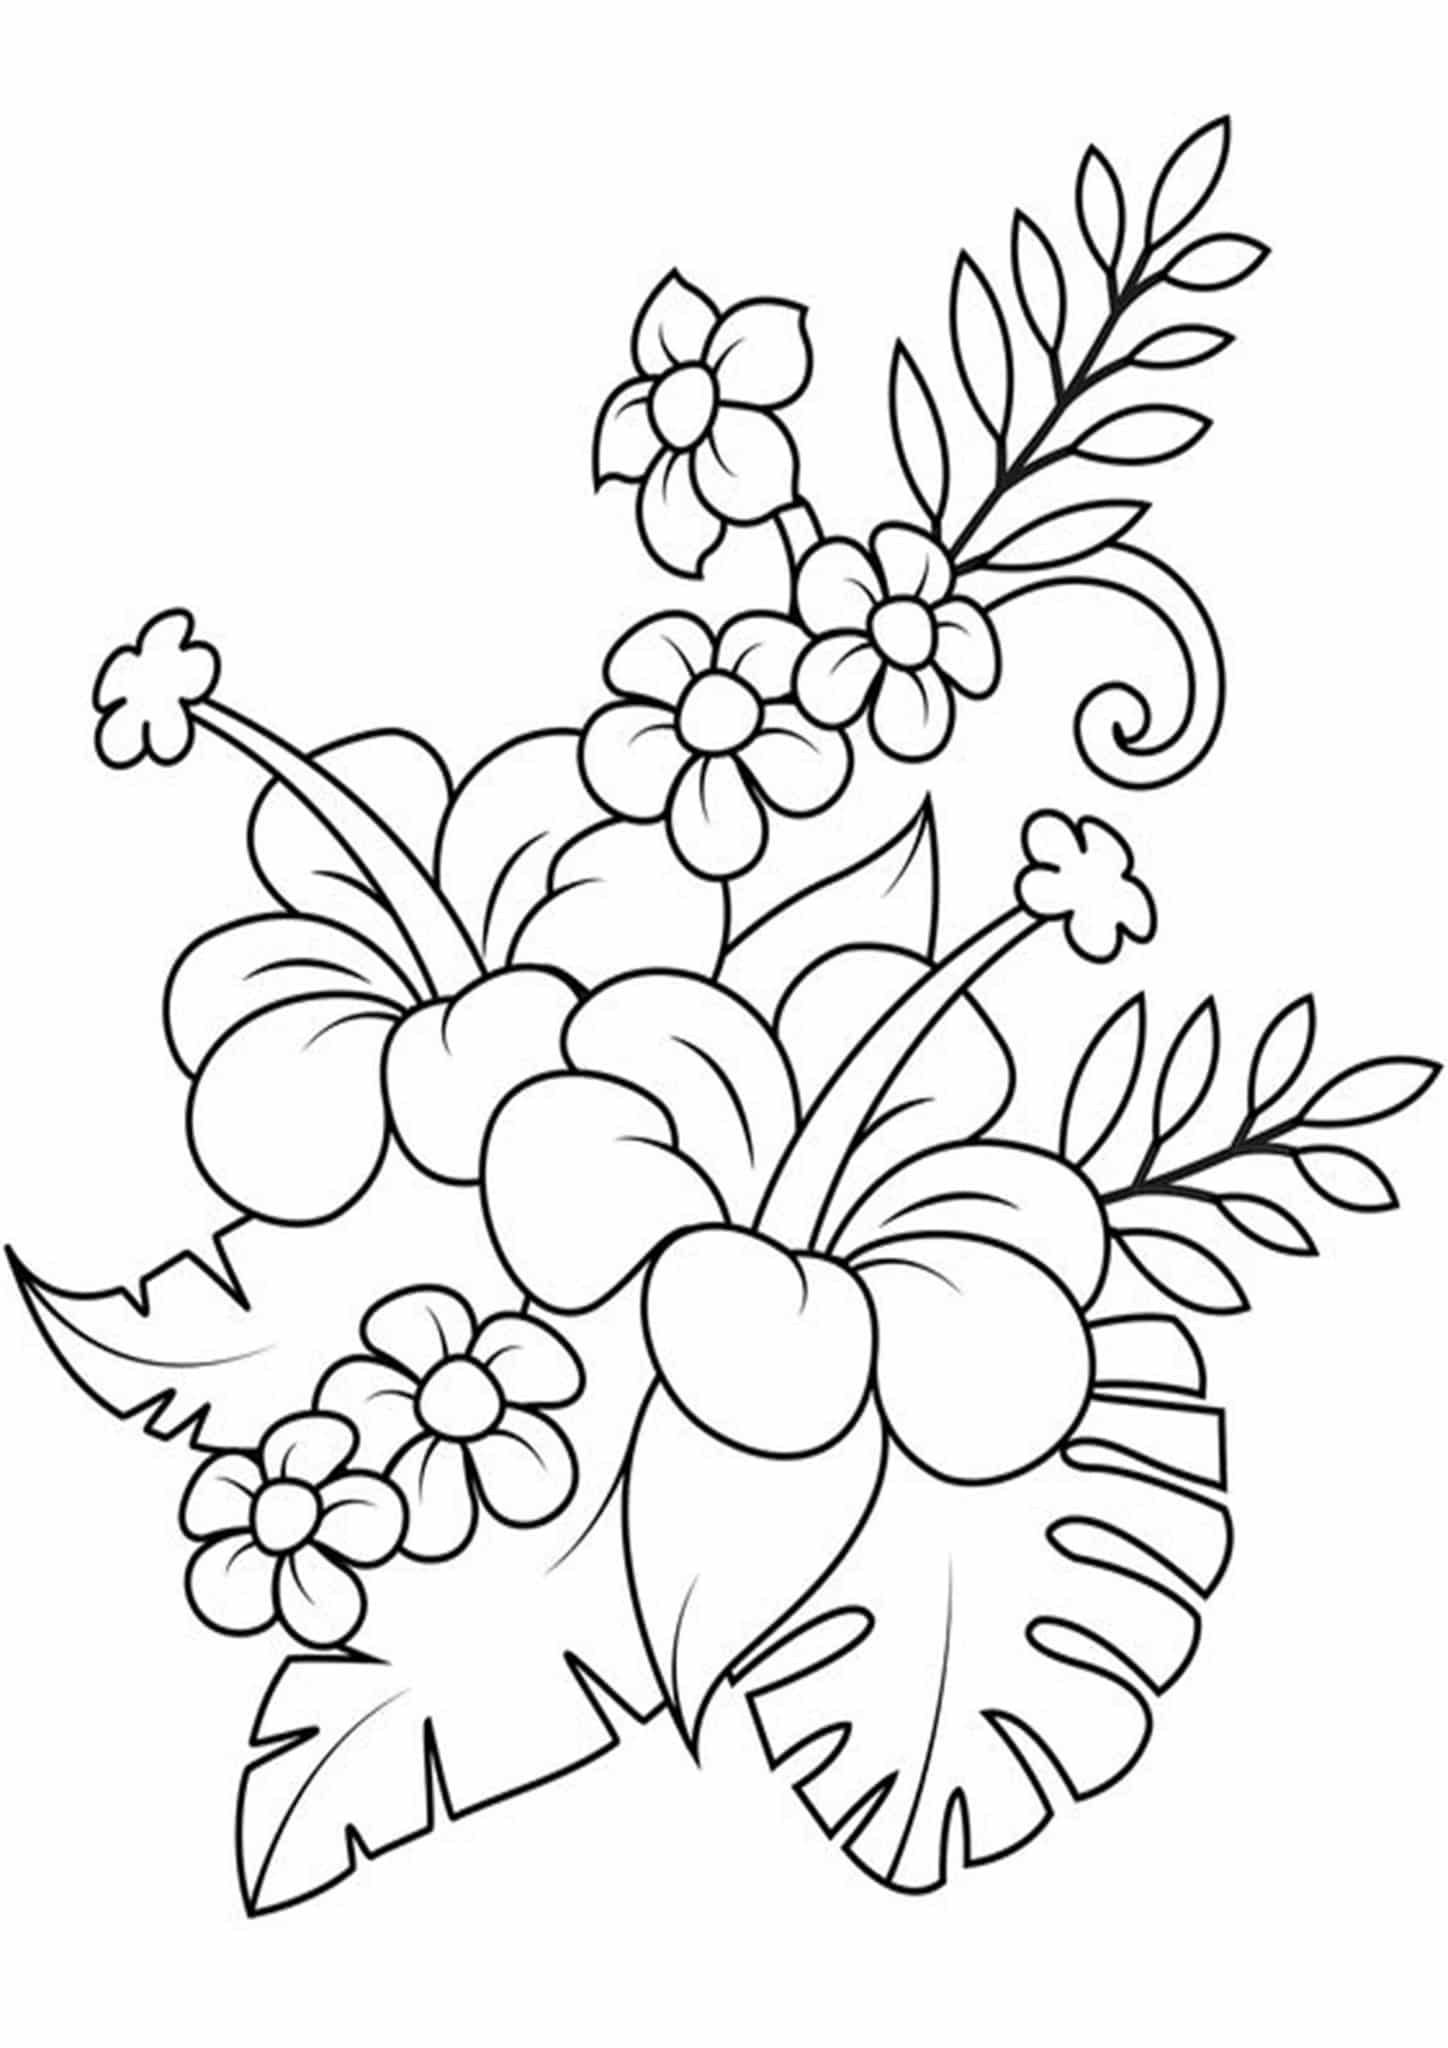 flower coloring page large flowers coloring pages to download and print for free flower page coloring